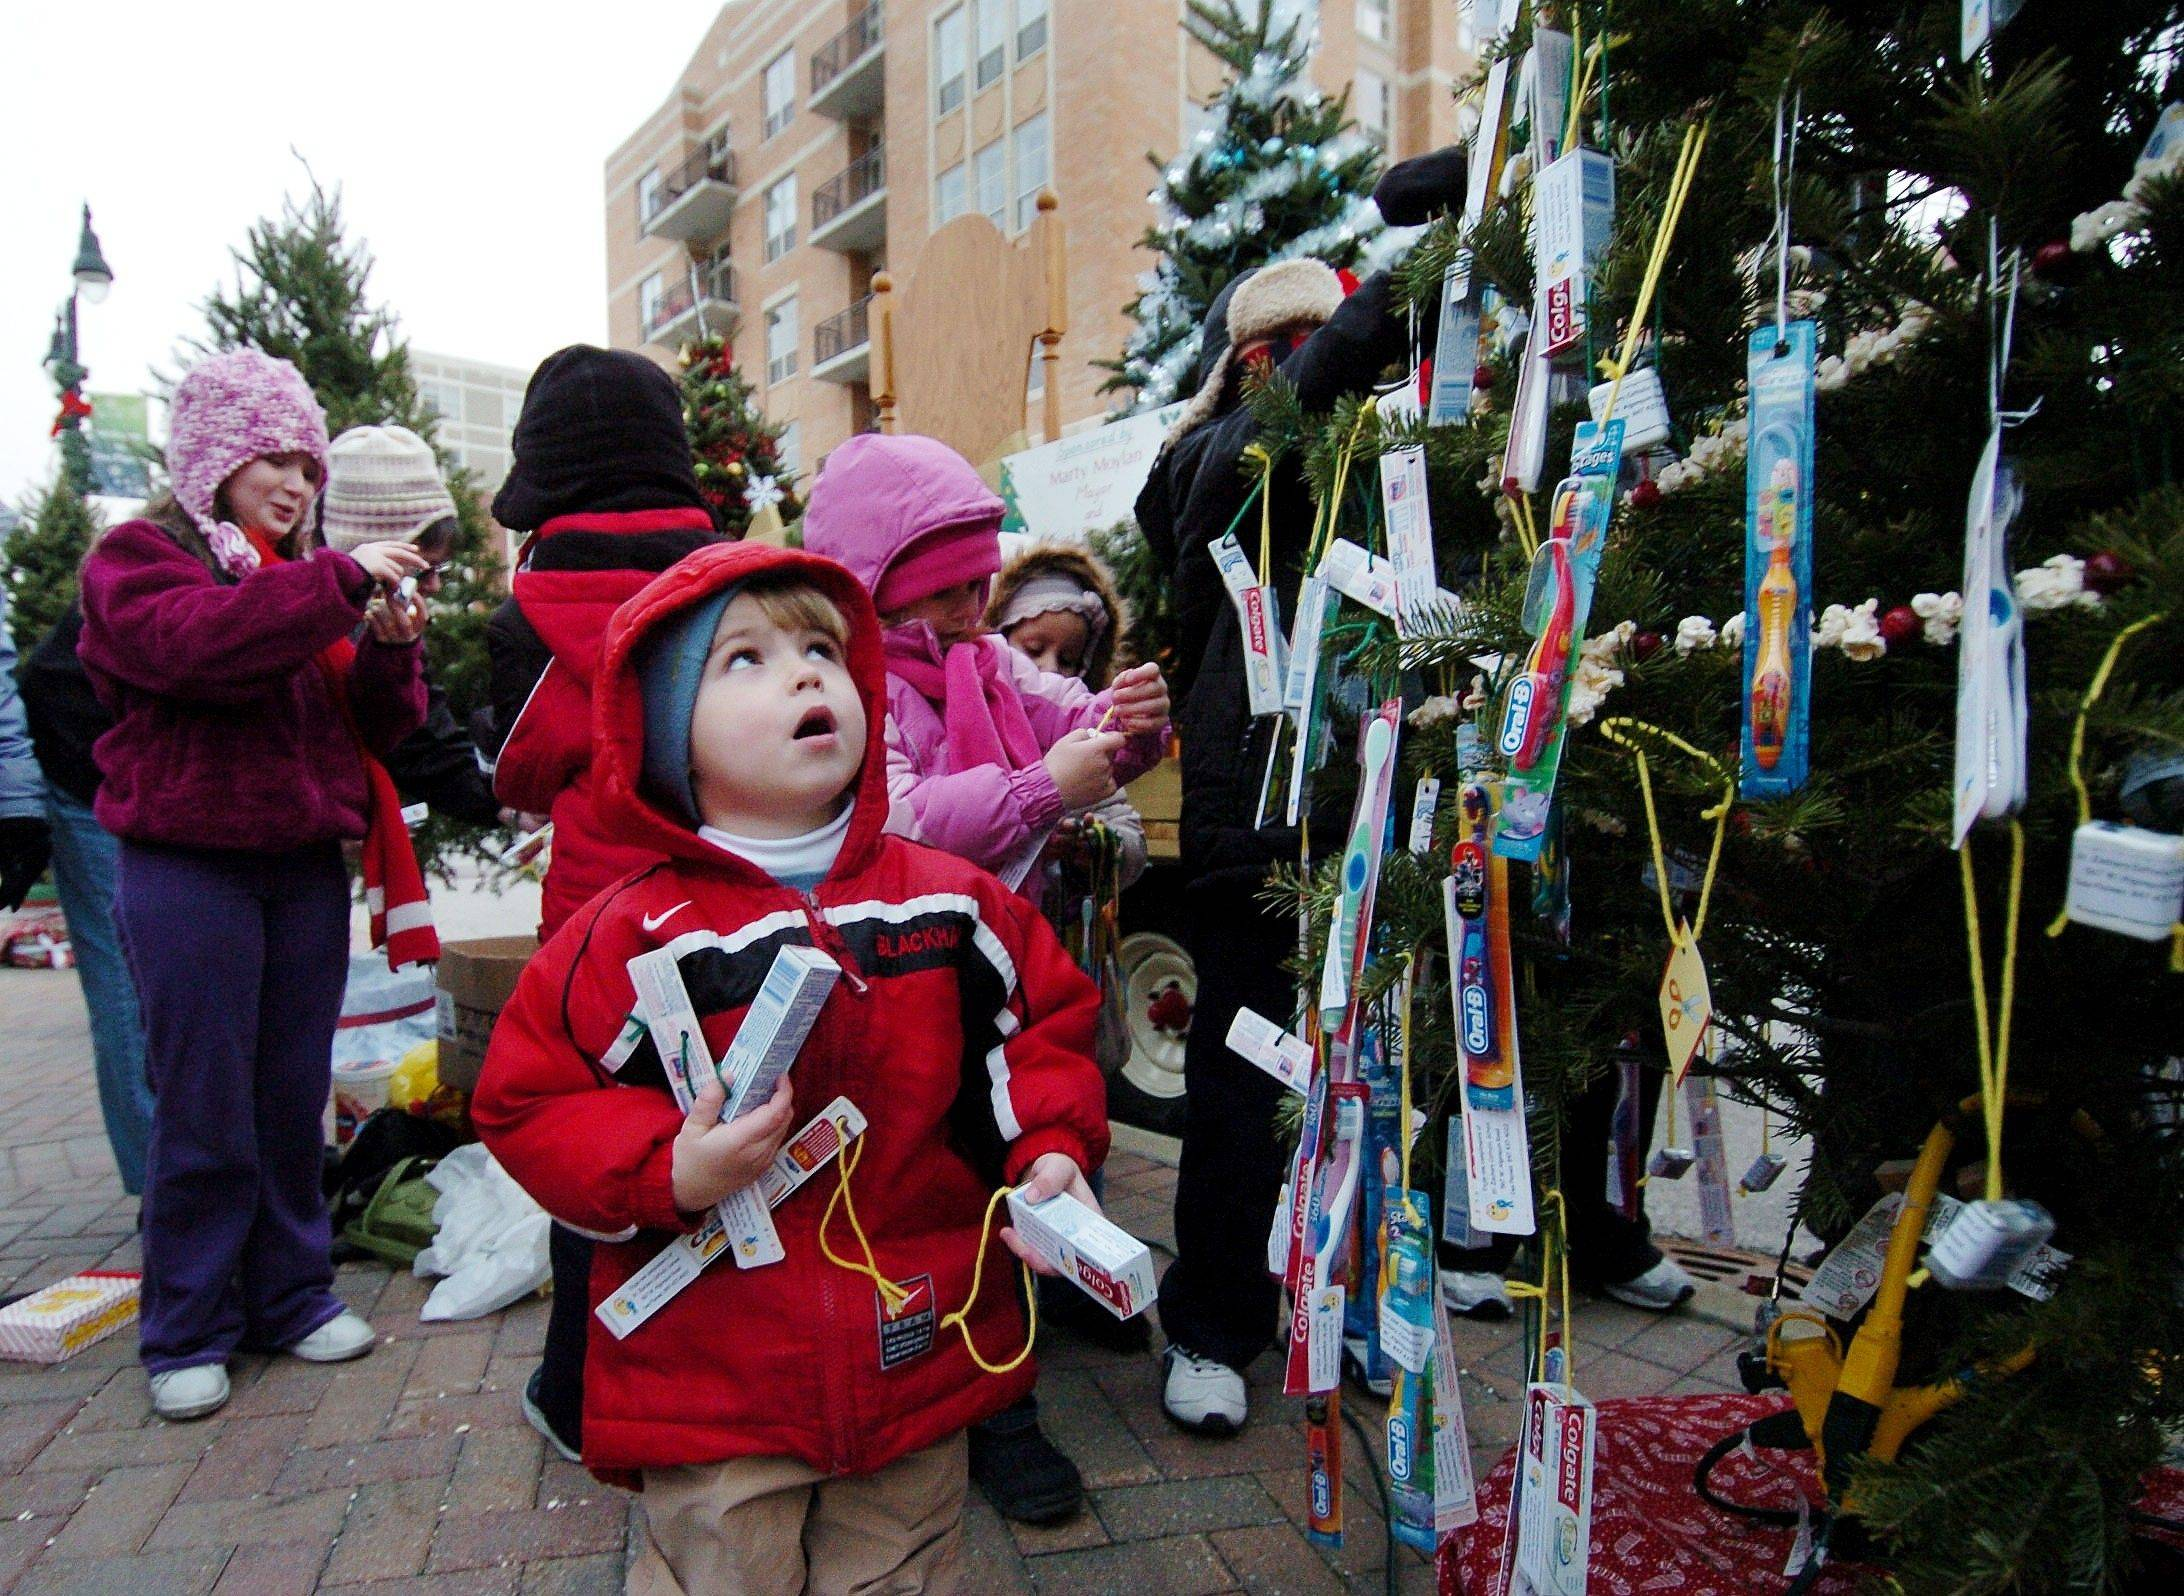 Sean Halpin is in awe of the large Christmas tree he's helping to decorate for St. Zachary's parish during the Des Plaines Christmas tree lighting street fest last year in at Metropolitan Square.